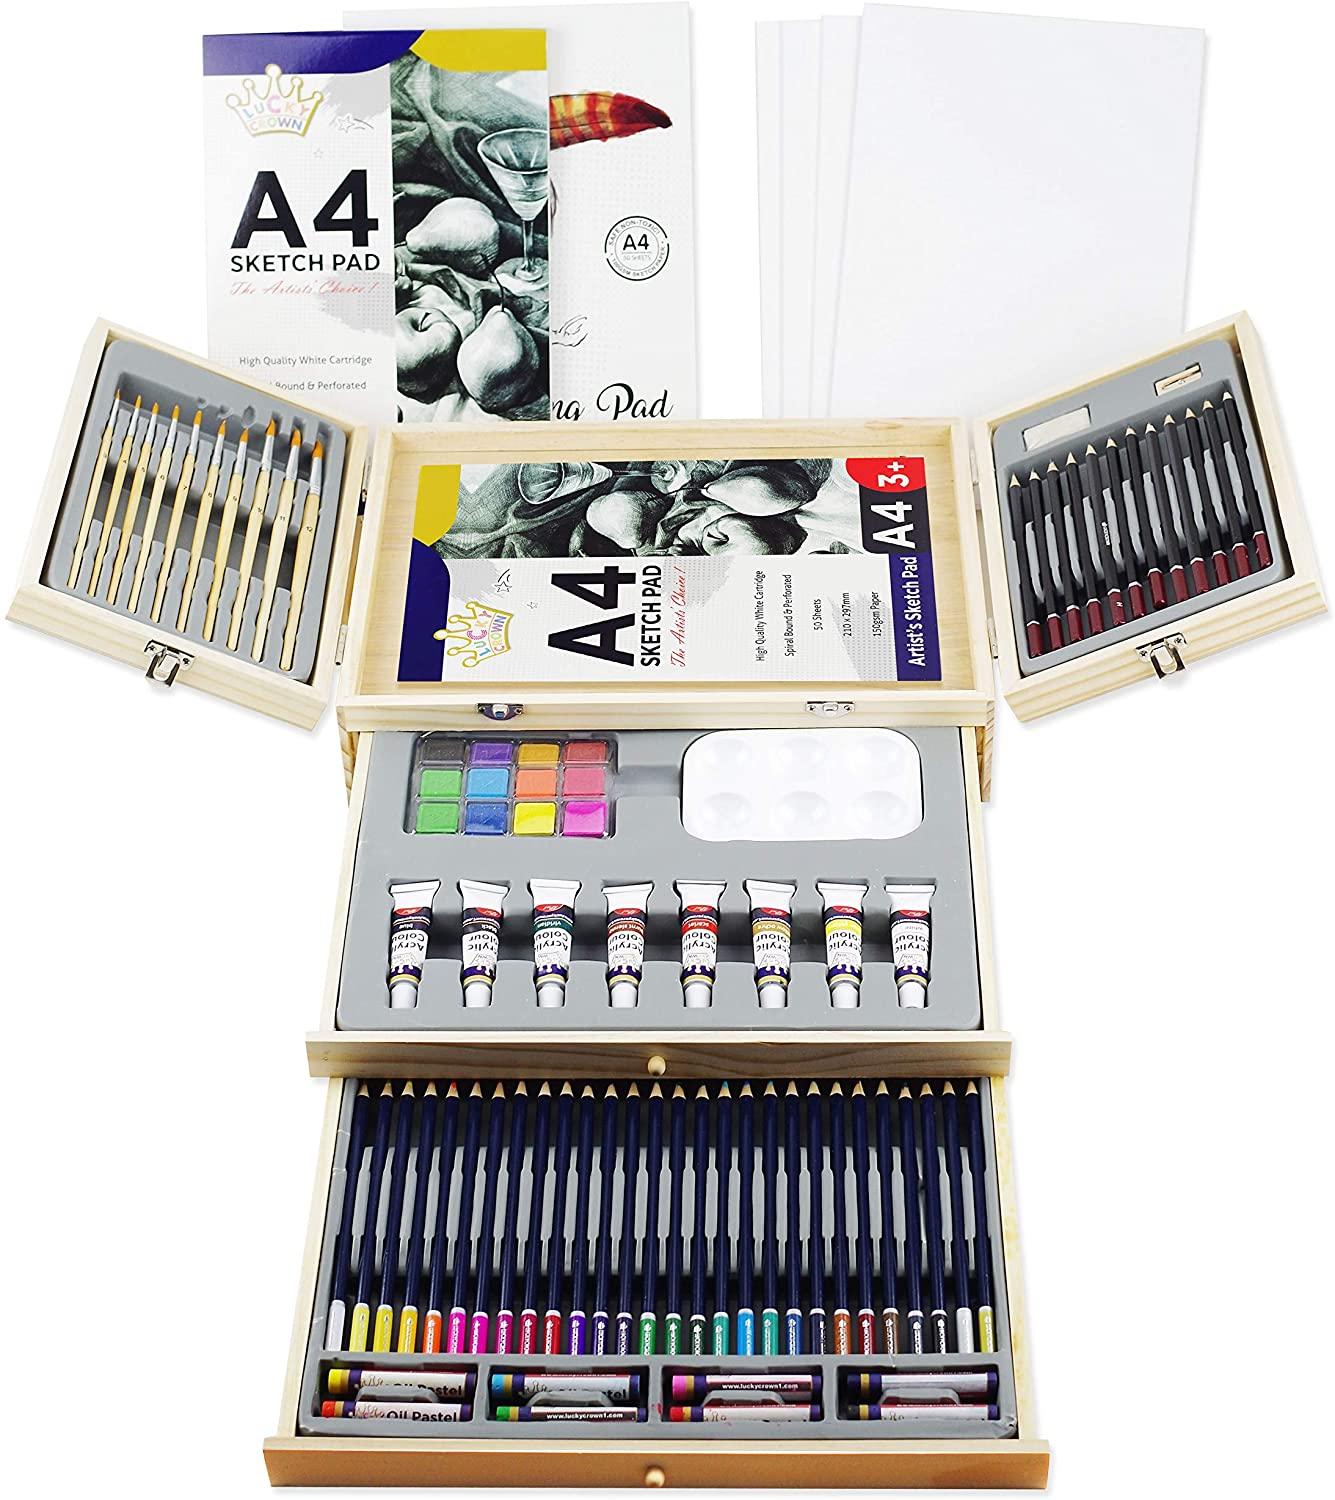 Art Supplies in Portable Wooden Case 83 Piece Deluxe Set Professional Art Set